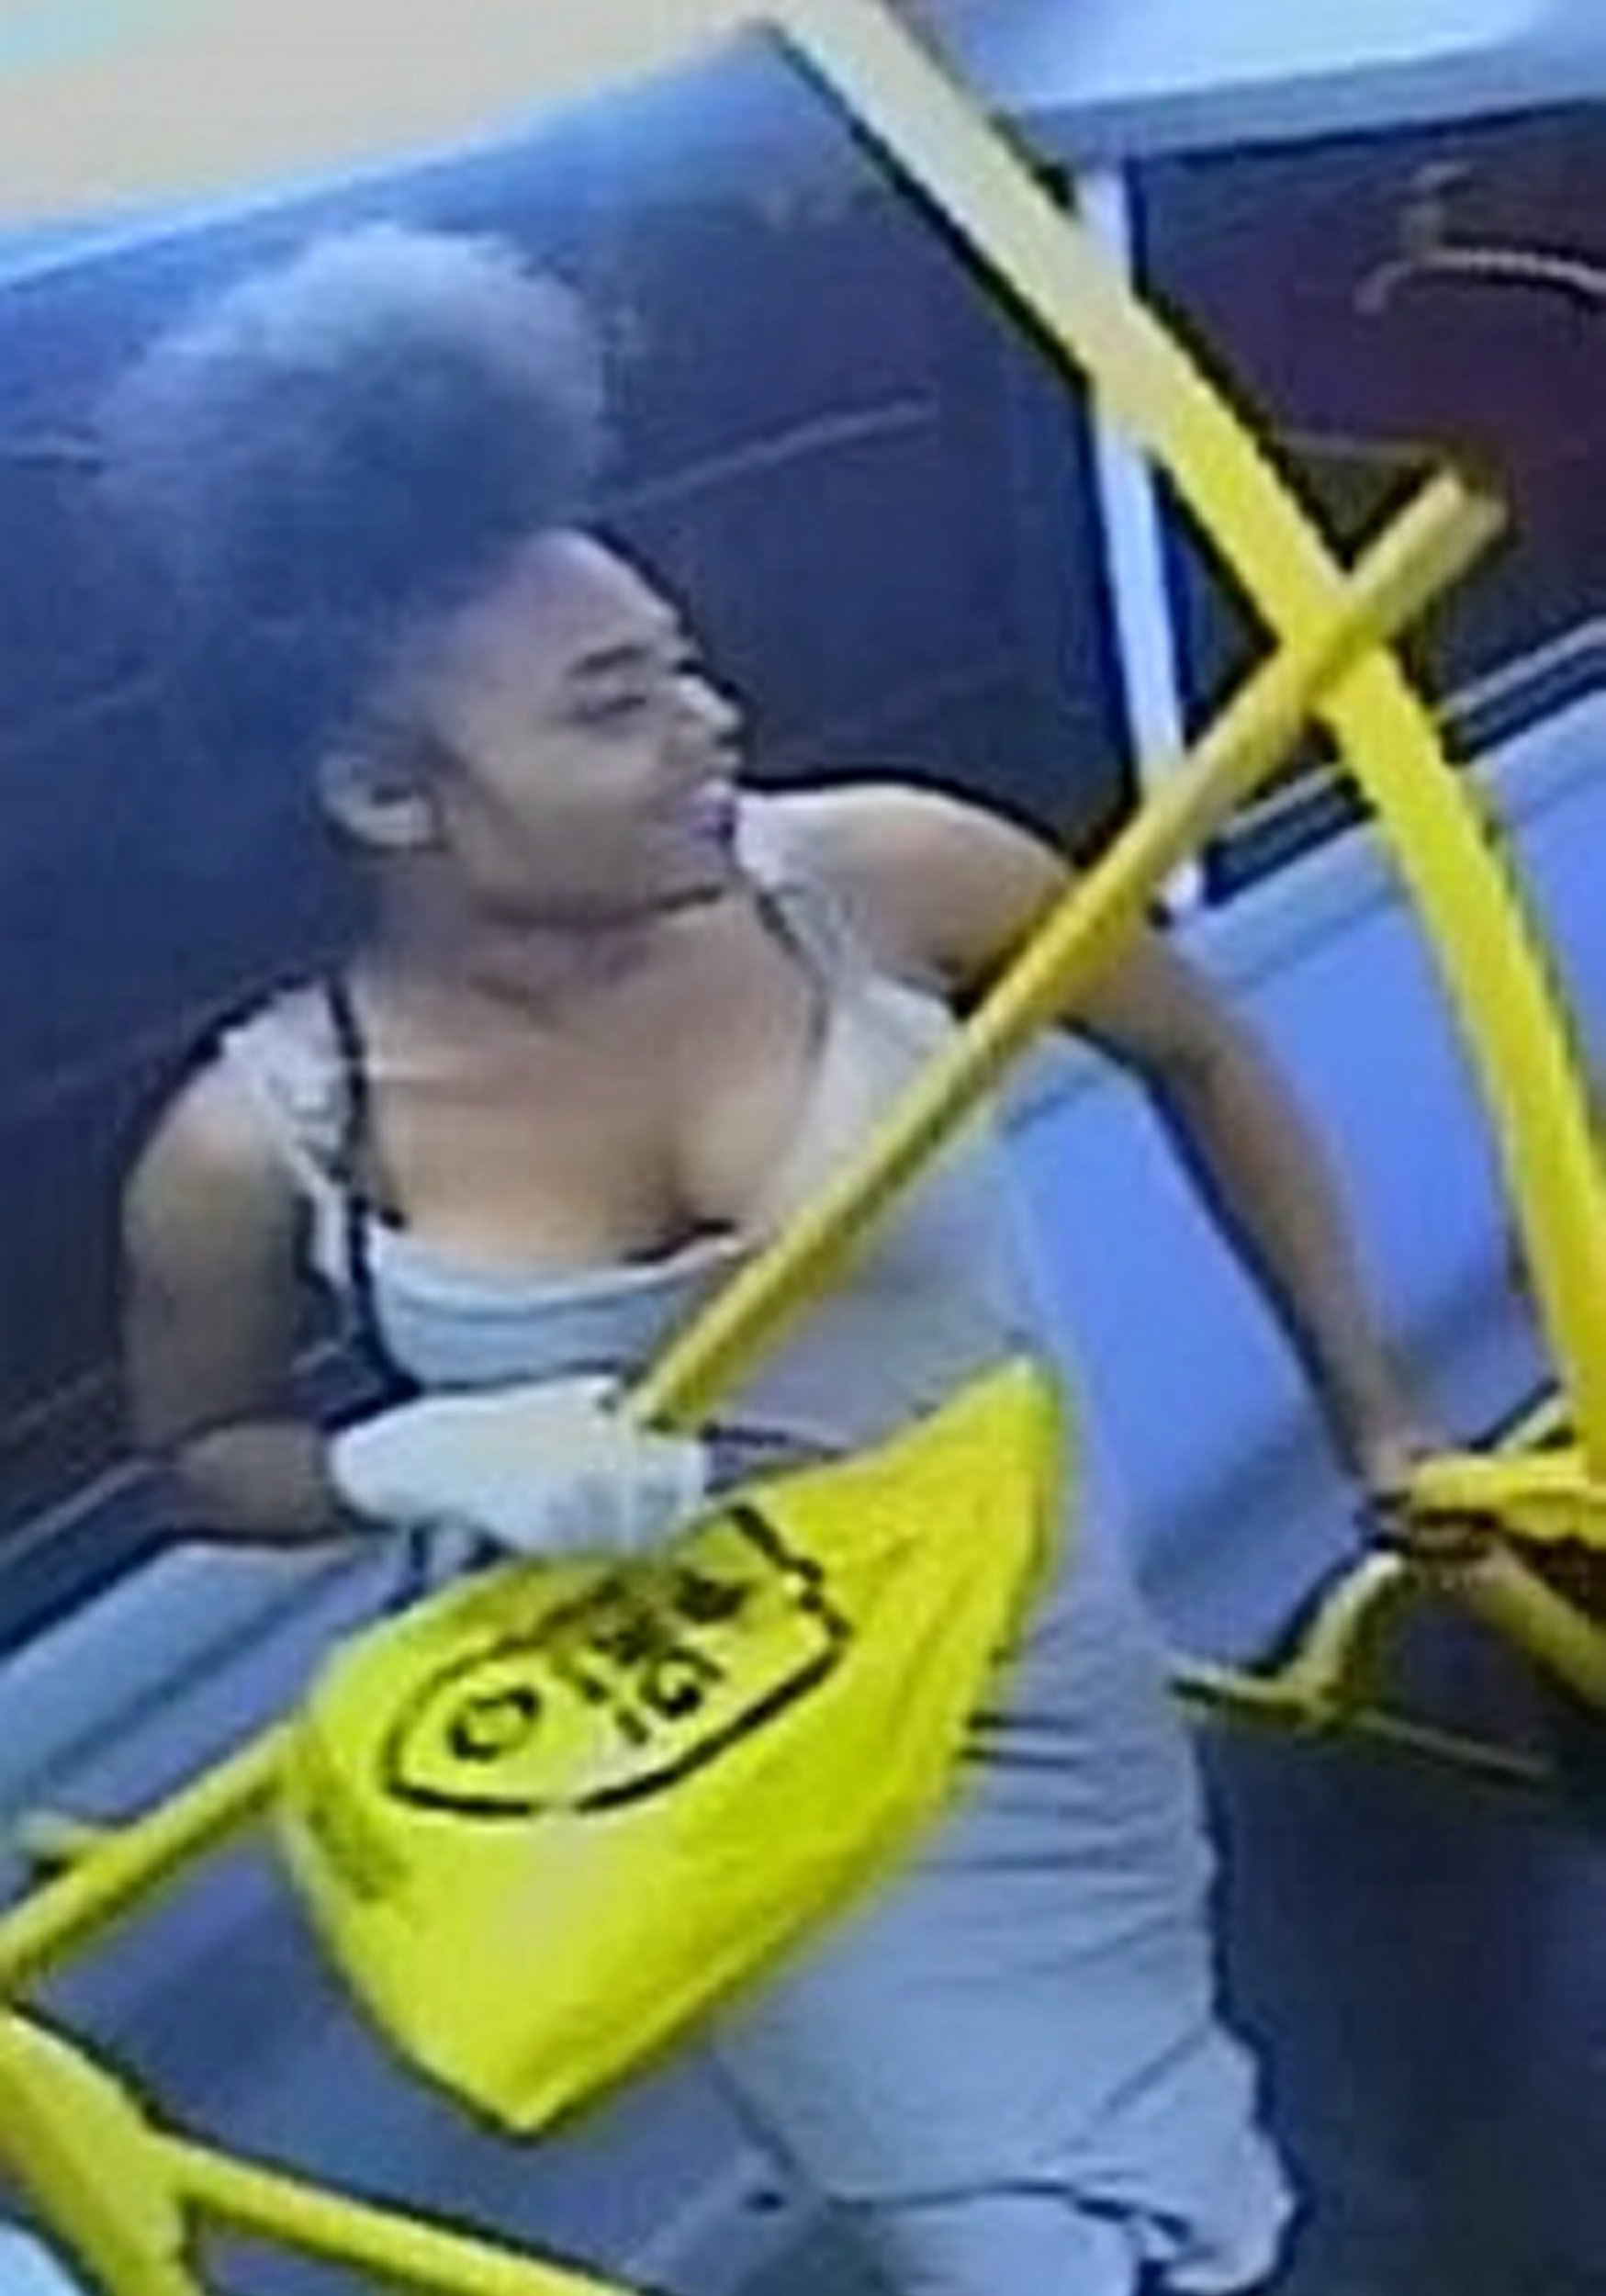 """Detectives are hunting two girls after a woman was battered with a metal pole and spat at on a bus. See National story NNattack; Met Police officers shared CCTV from the bus of two girls they want to speak to over the unprovoked attack - both wearing a dress and trainers. There were four suspects and police said one hit the woman, 29, with the metal pole and two spat at her. The CCTV of two of the suspects appears to show one puffing a cigarette on the bus while the other carries a bright yellow JD sports bag. Cops said they have already quizzed two teens over the assault and both were released under investigation. A spokesman said: """"As they were getting off the bus, they attacked a 29-year-old female passenger. """"One of the suspects hit the woman around the face with a small metal pole - two of the suspects also spat at her. """"Officers from the Roads and Transport Policing Command are investigating."""